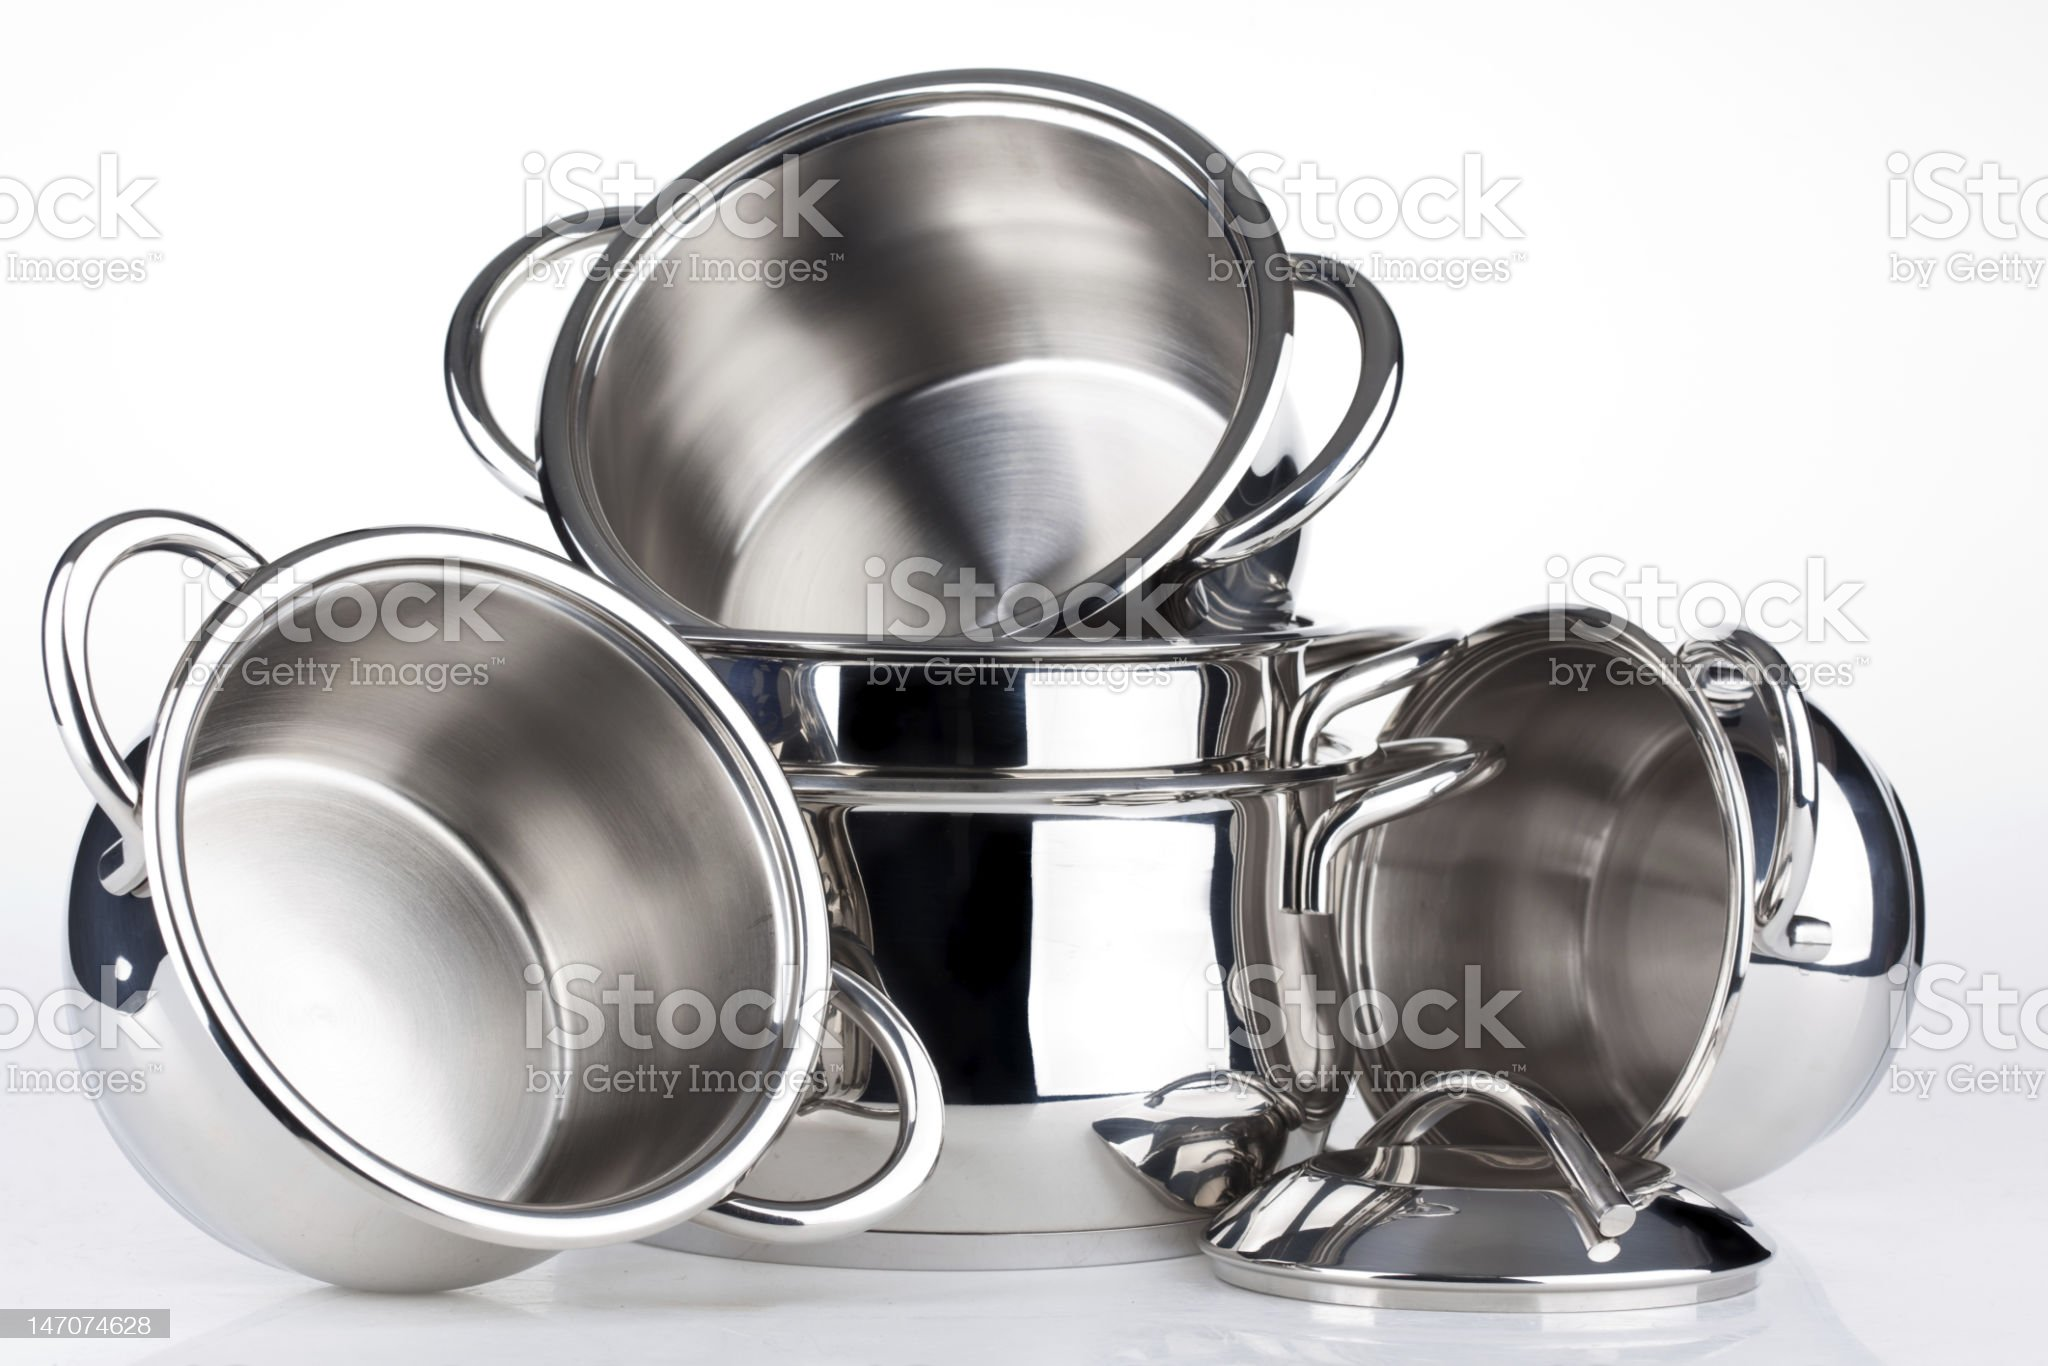 A set of stainless steel pots and lids  royalty-free stock photo